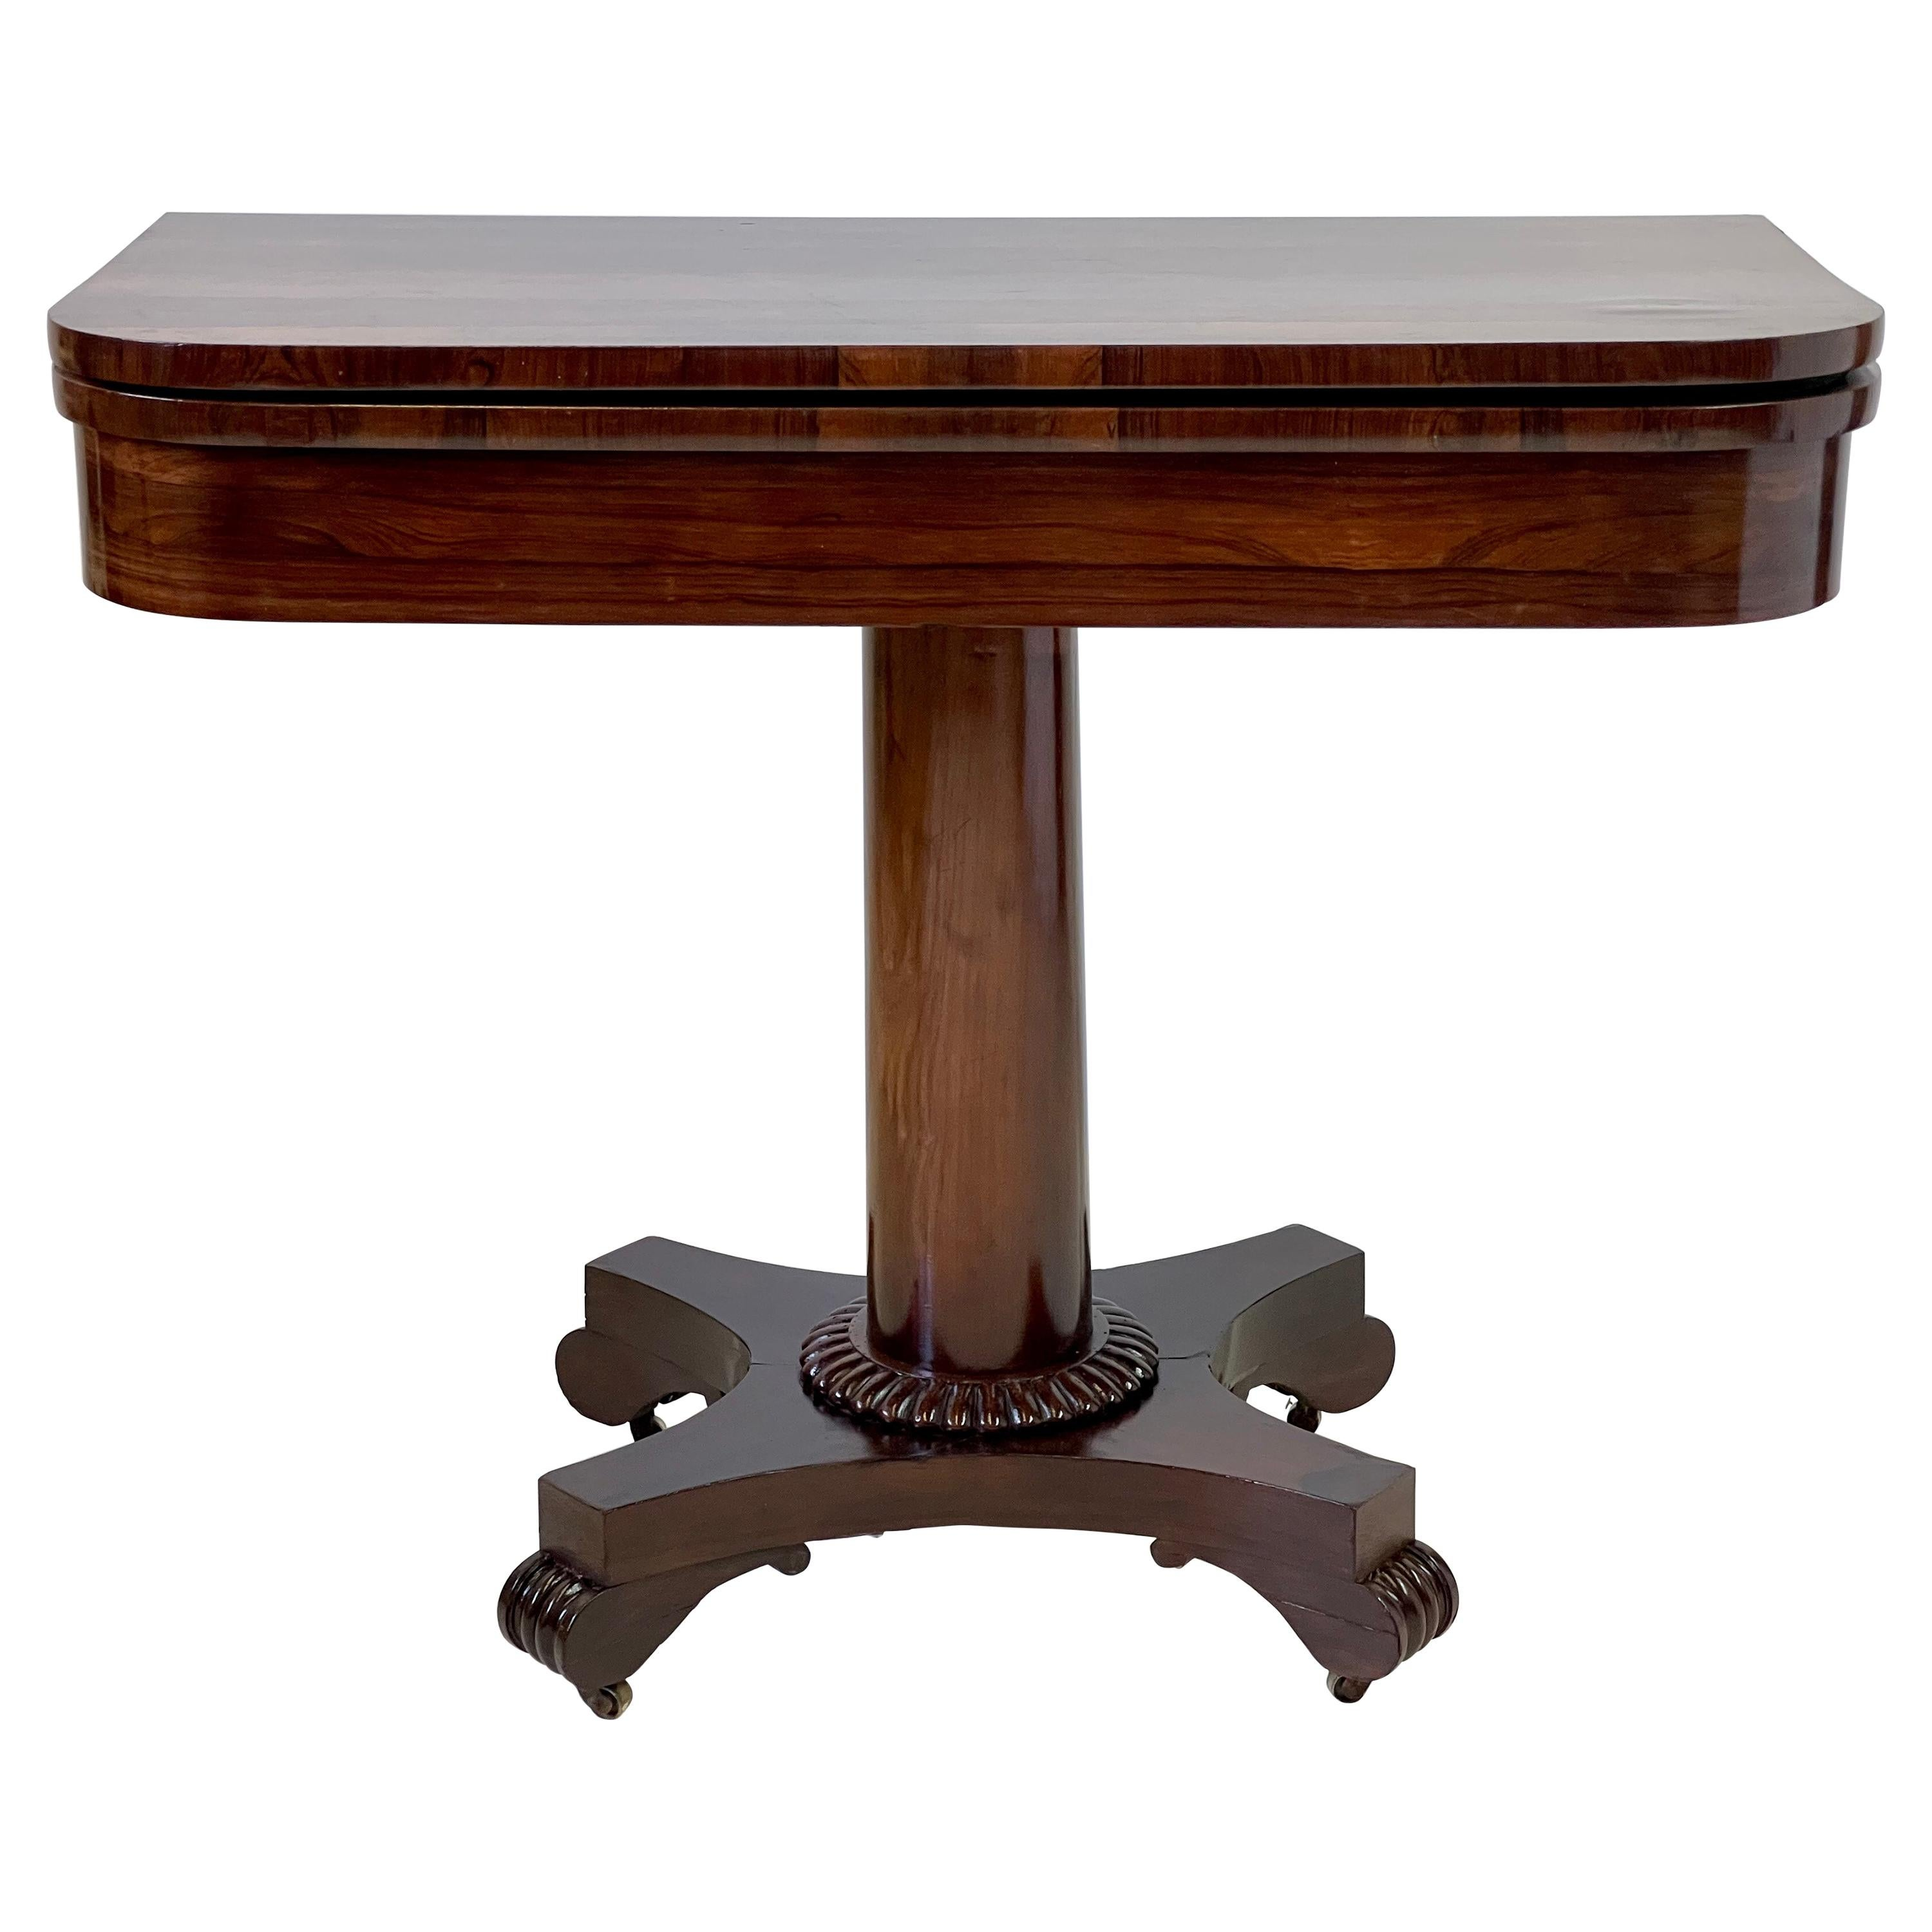 19th Century English Regency Game Table of Rosewood